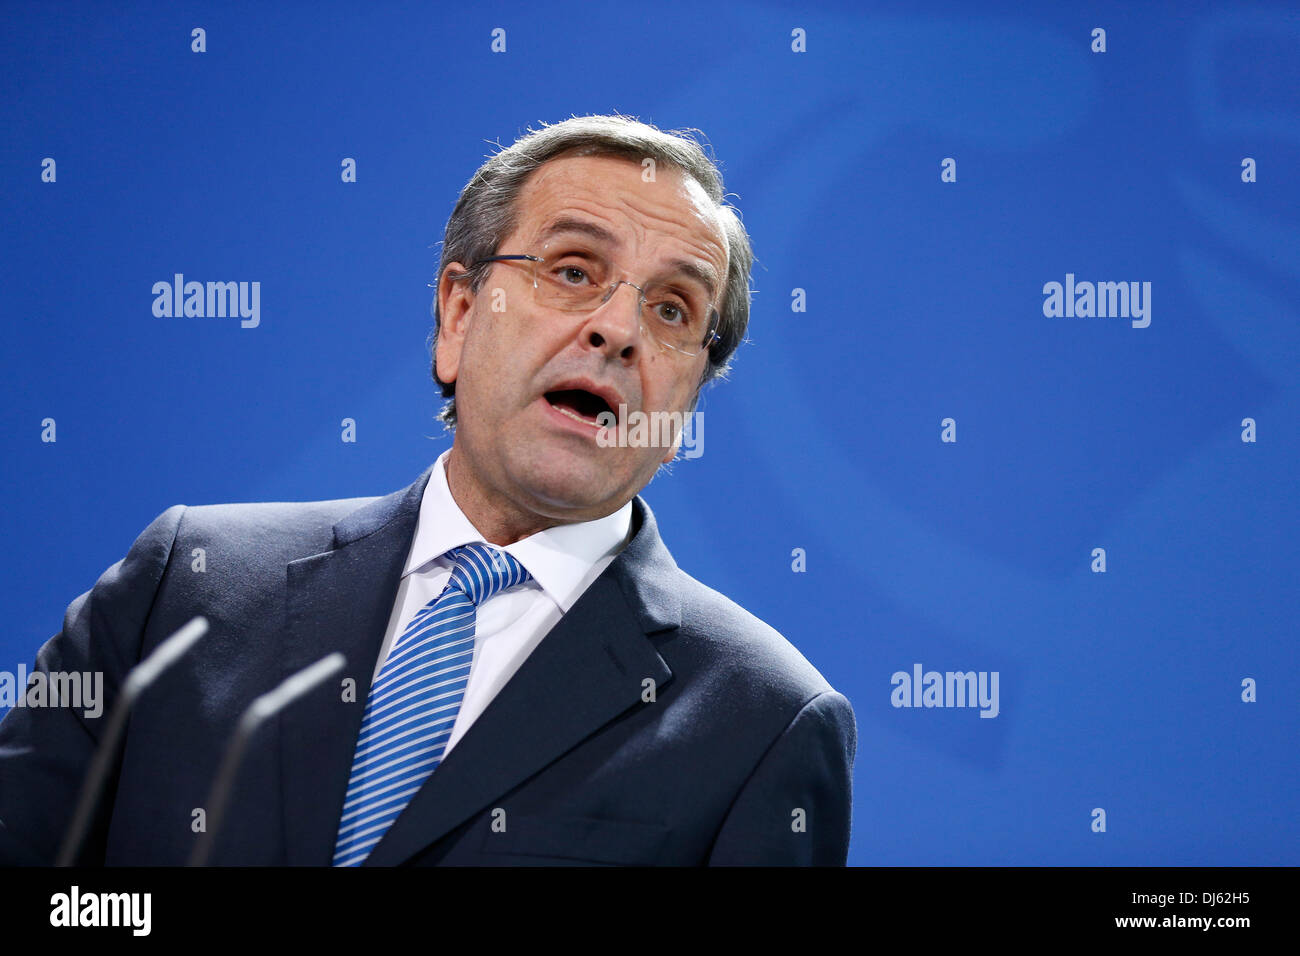 Berlin, Germany. November 22th, 2013. Angela Merkel, German Chancellor, receives Andonis Samaras, Greek prime minister, at the Chancellery in Berlin. / Picture: Andonis Samaras, Greek prime minister, speaks at press conference in berlin. Credit:  Reynaldo Chaib Paganelli/Alamy Live News - Stock Image